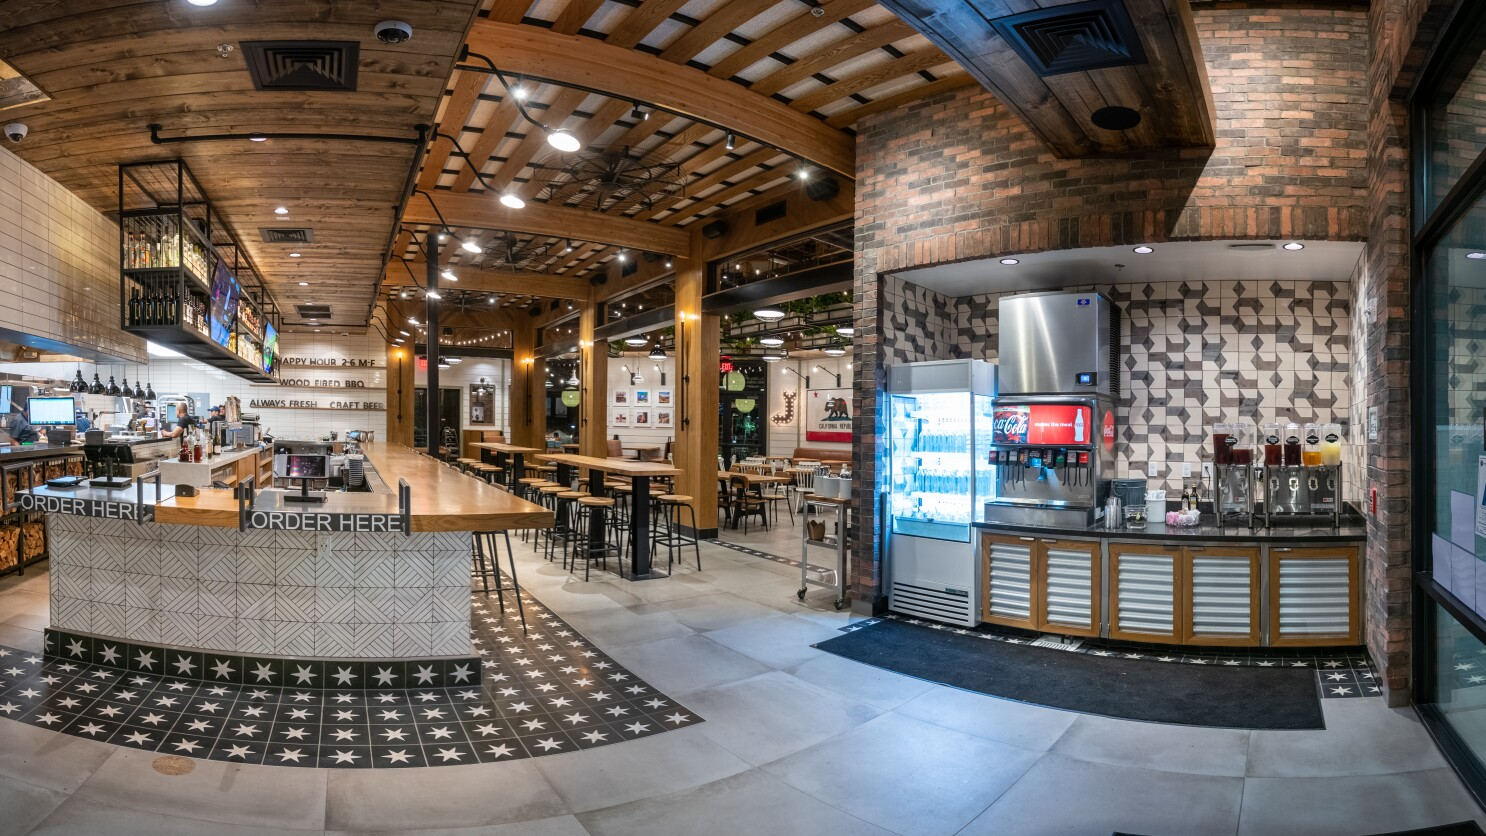 Wood Ranch Tests Fast Casual Restaurant Concept In Carlsbad The San Diego Union Tribune